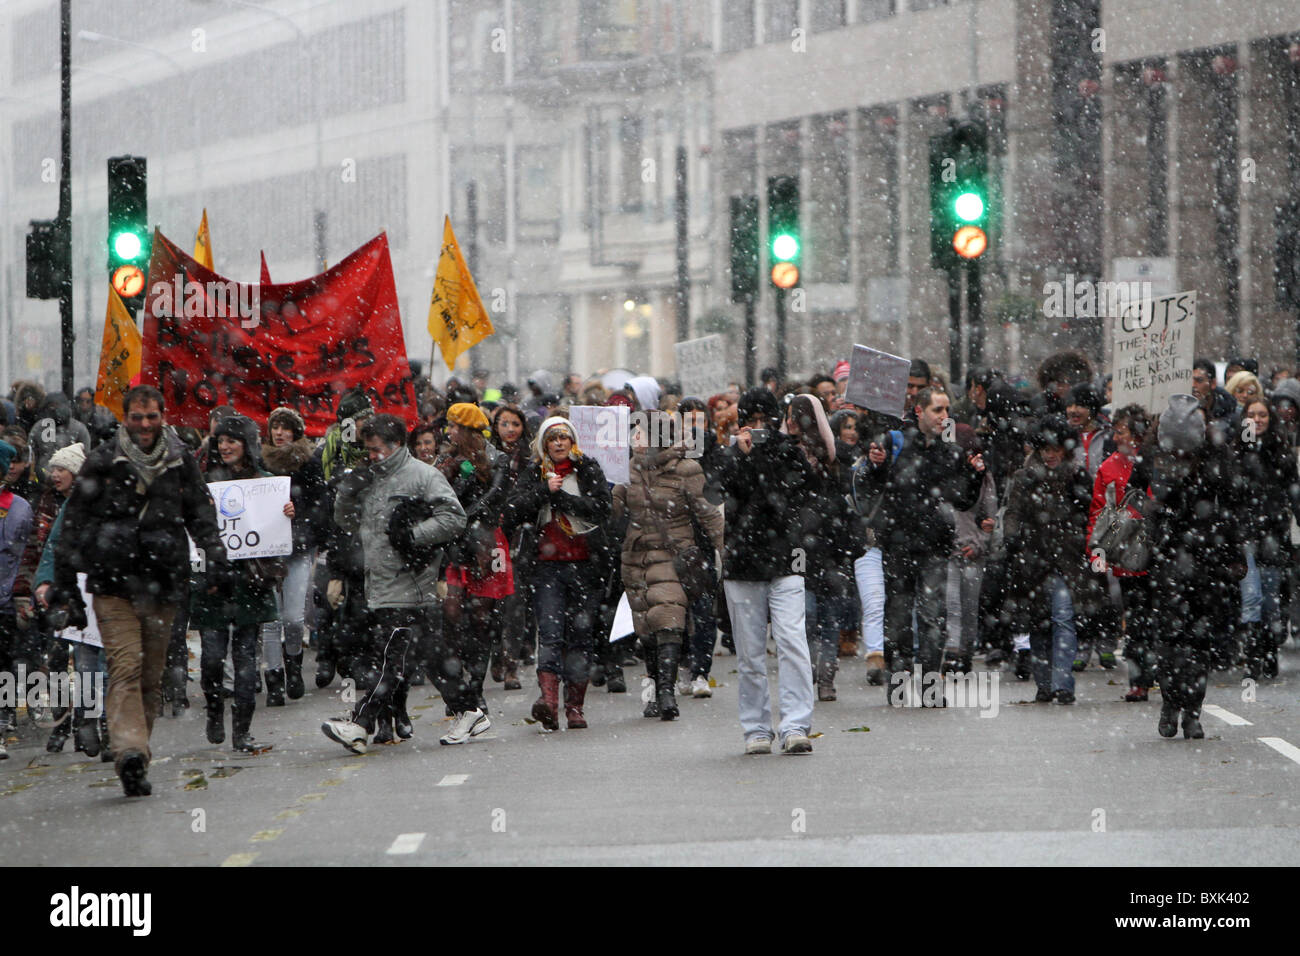 English Students' anti cuts protest through the snowy streets of London. - Stock Image